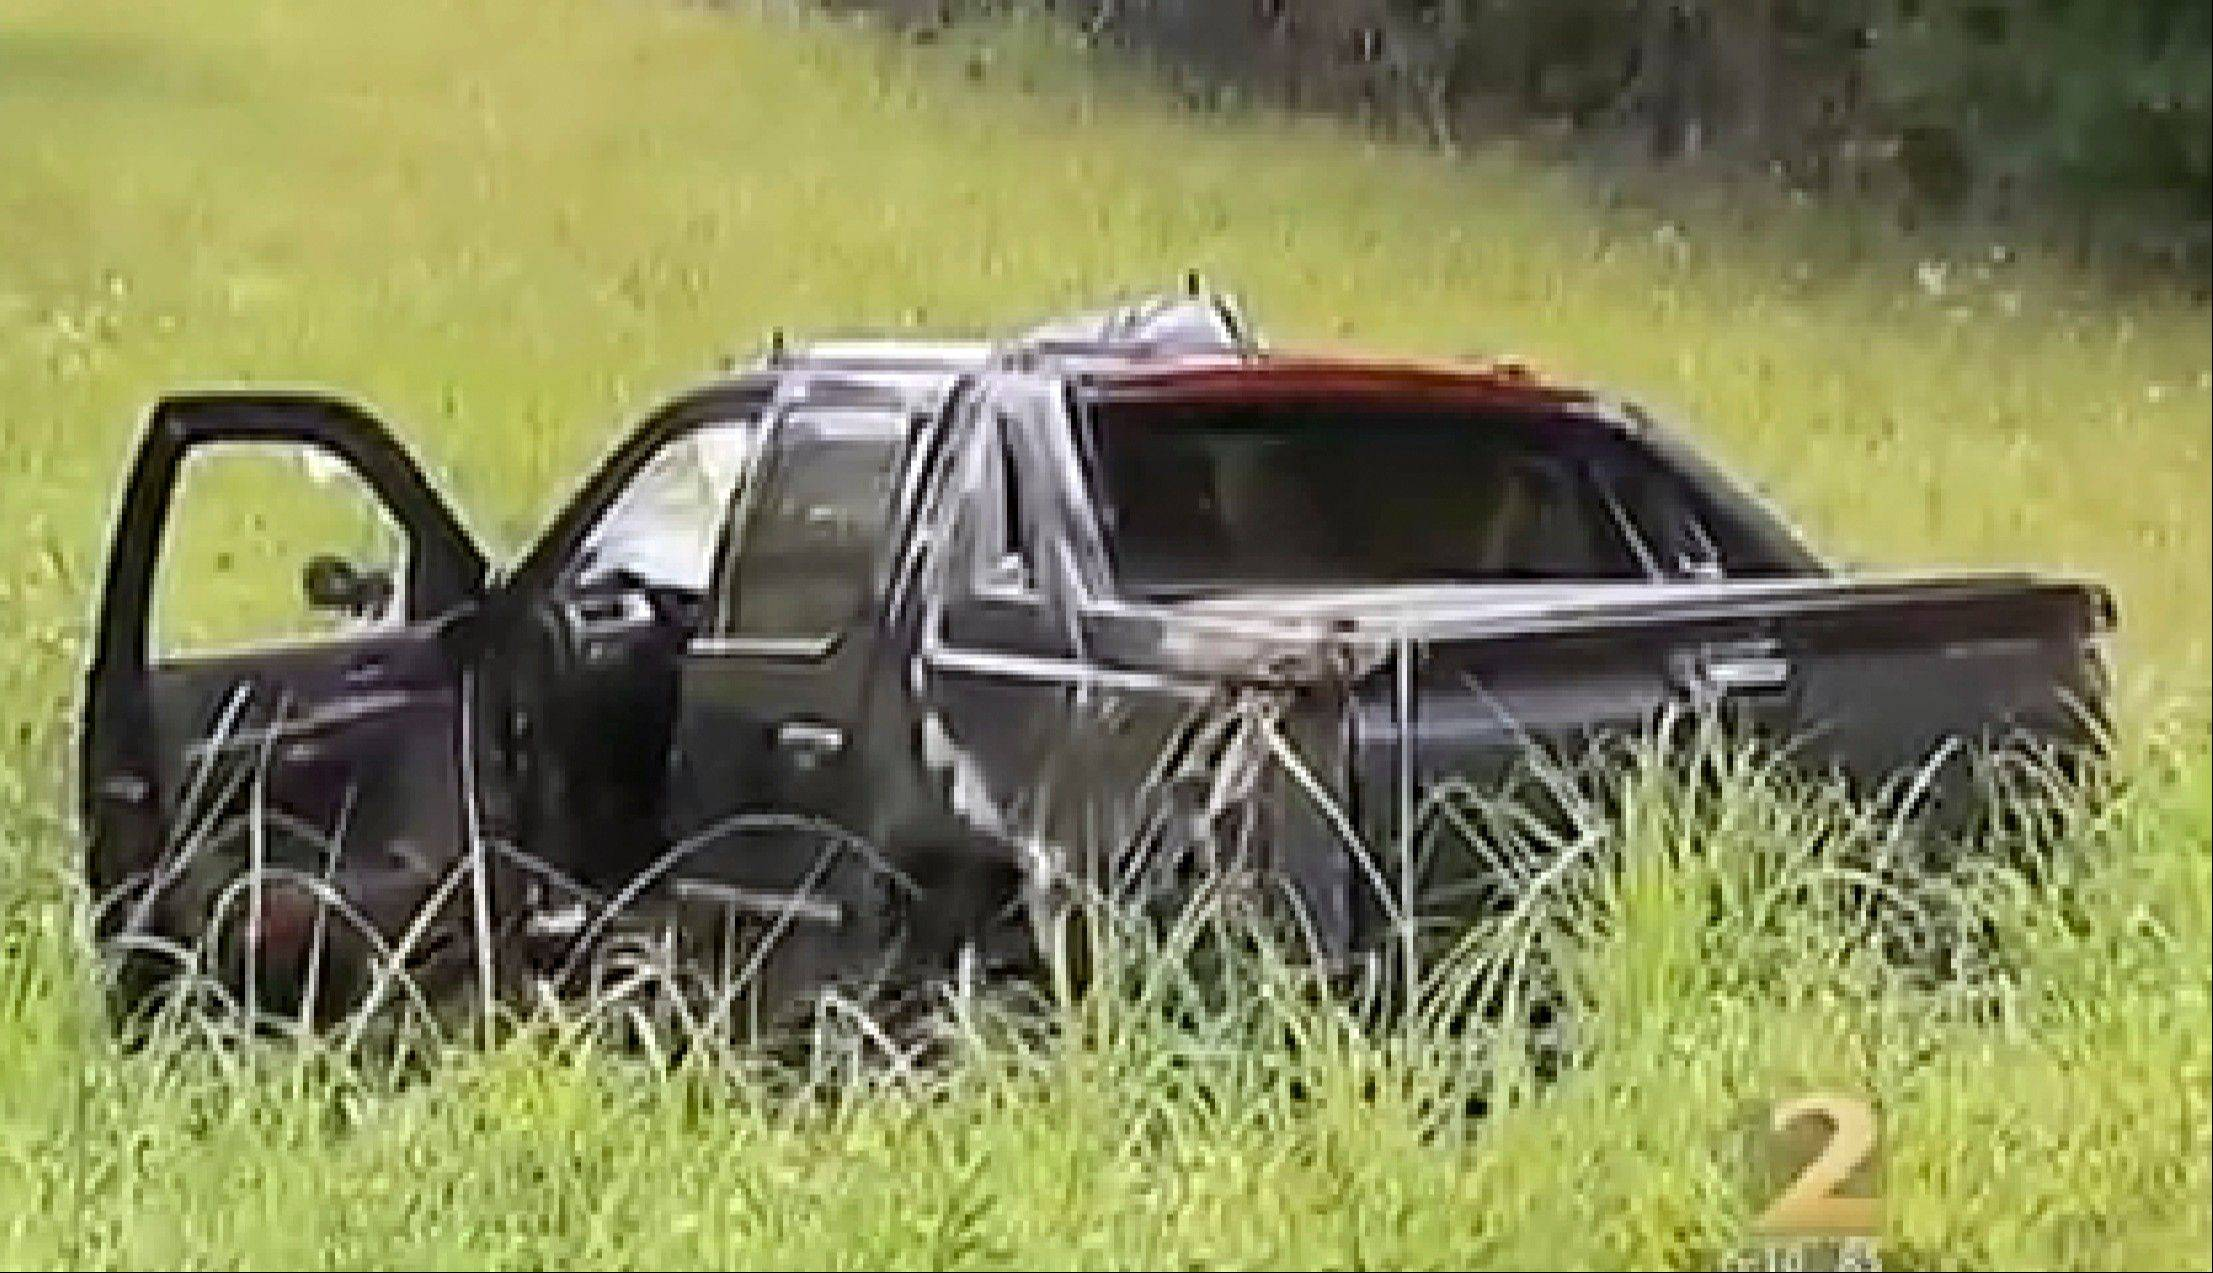 "In this image taken from video, an SUV sits off road at the scene of a car crash Friday, May 31, 2013, in Jonesboro, Ga. Former NBA All-Star guard Daron ""Mookie"" Blaylock was on life support at a hospital Friday after his SUV crossed the center line and crashed head-on into a van in suburban Atlanta, police said. Clayton County (Ga.) police spokesman Clarence Cox says the man and woman riding in the van were also injured and to the hospital. Their names and conditions were not immediately available. (AP Photo/WSB-TV) MANDATORY CREDIT"